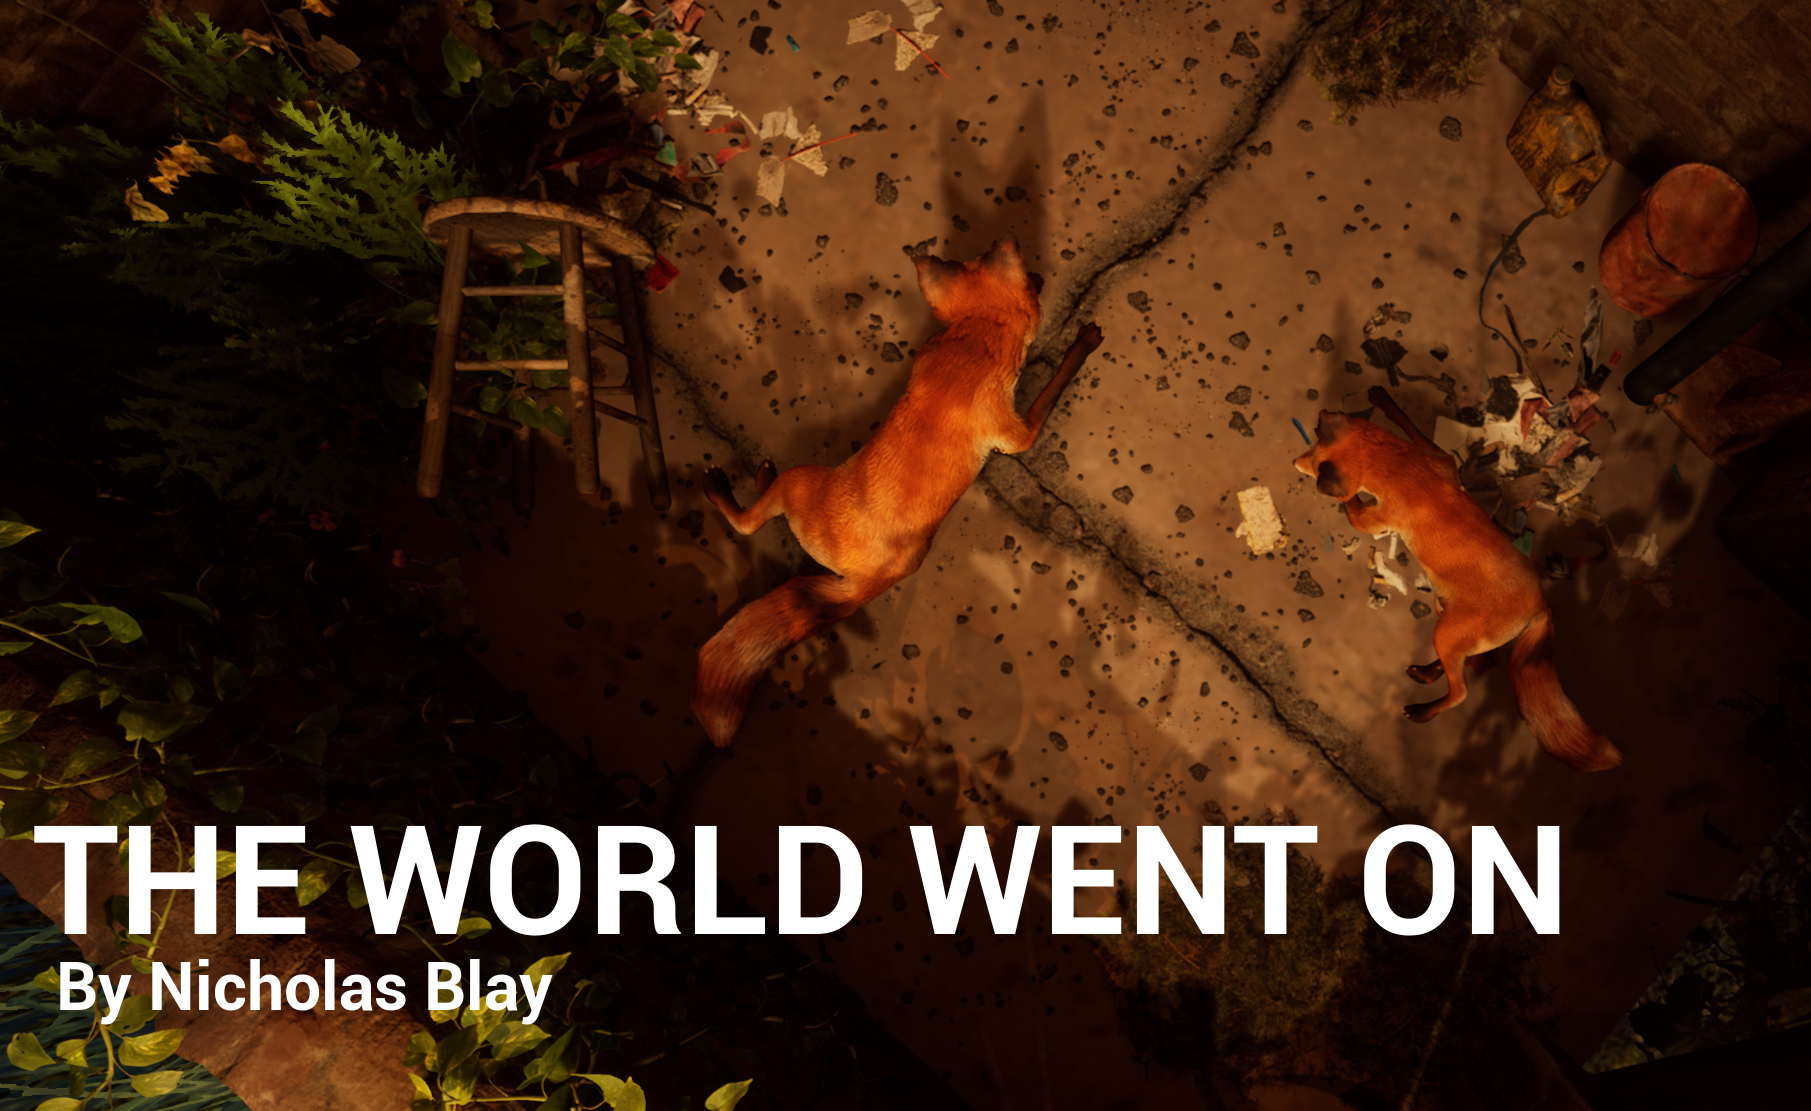 THE WORLD WENT ON